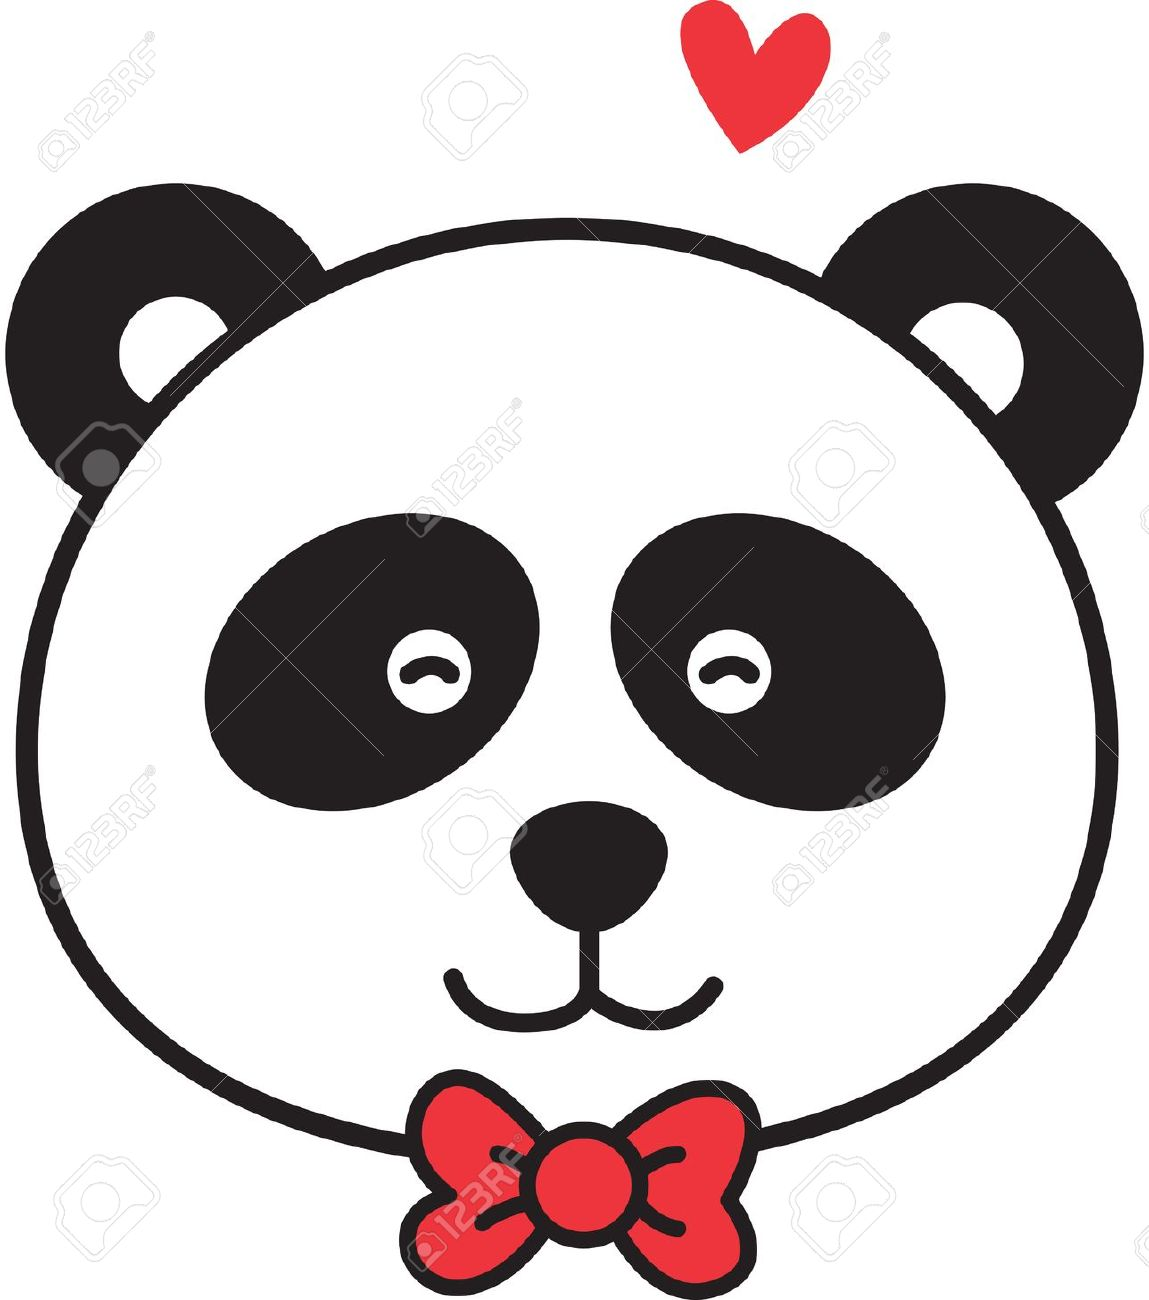 Cute Panda Drawing | Free download on ClipArtMag